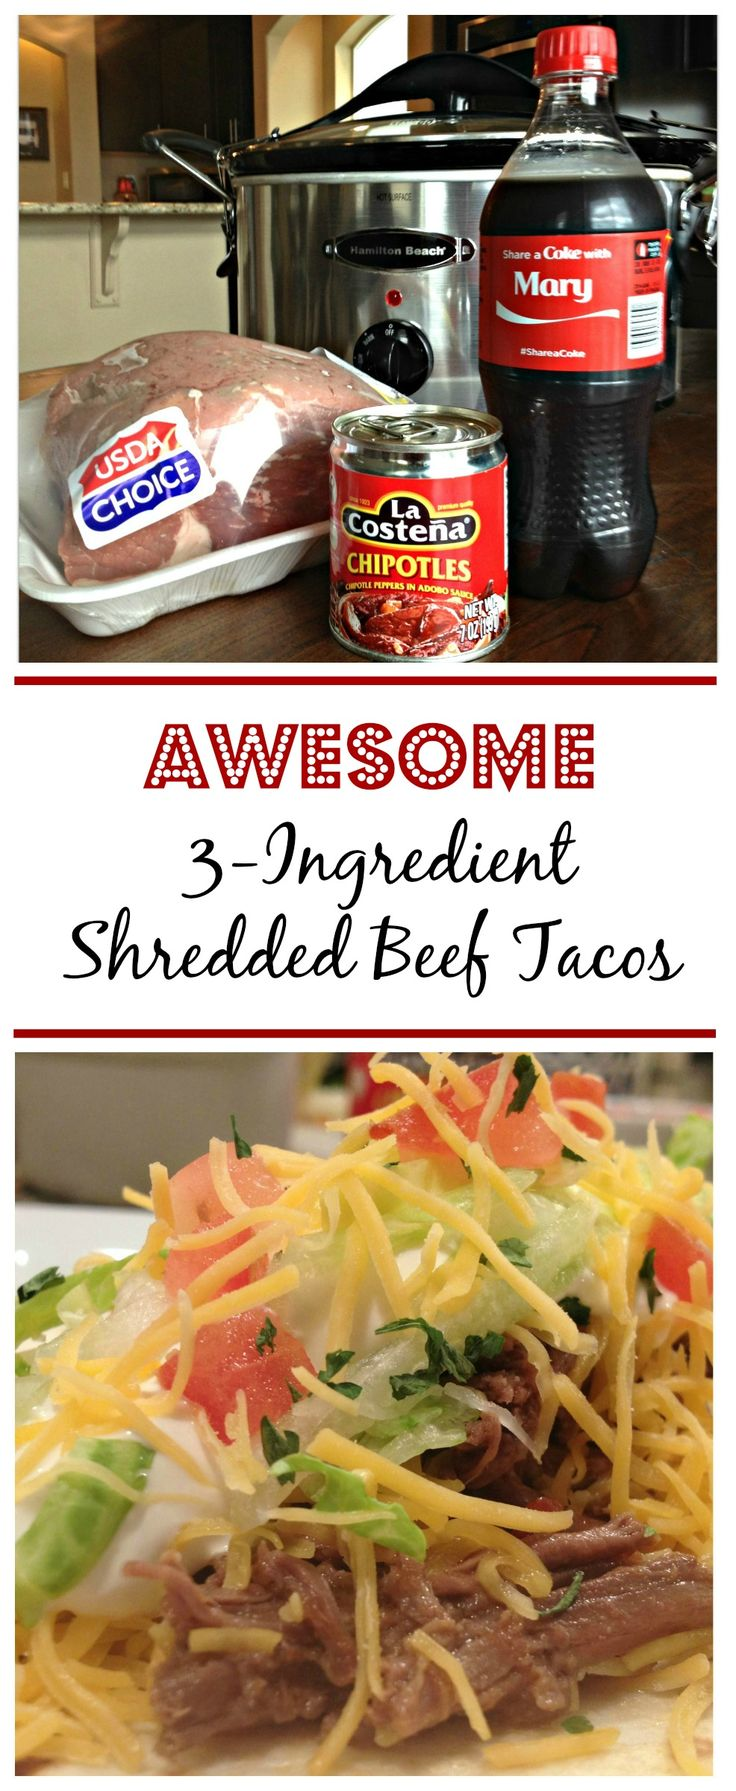 AWESOME 3-INGREDIENT CROCK POT SHREDDED BEEF TACOS!!! Tried & True recipe that's so darn good. I'm kicking myself for not trying this recipe sooner!  Taco night just got a lot better. |  SweetLittleBluebird.com